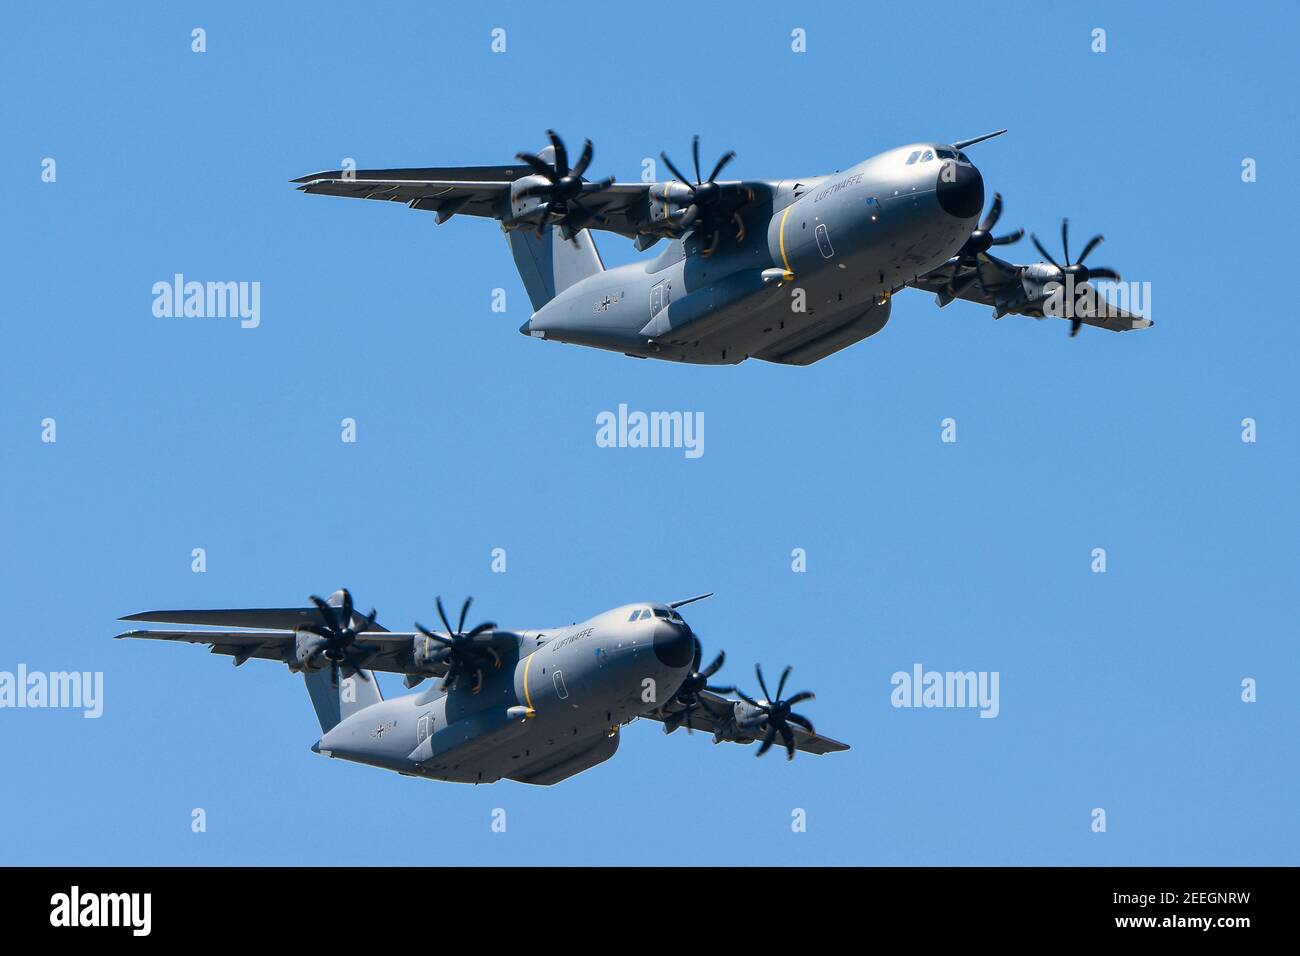 "07.06.2018, Wunstdorf, Lower Saxony, two Airbus A400M ""Atlas"" in flight, taken on spotterday on Air Transport Wing 62. The Airbus A400M has been replacing transport aircraft from seven NATO countries since 2013. In the German Air Force, the A400M is to replace the old Transall C-160 from the 1960s. With a higher payload, range and speed, the A400M should have the same capabilities and also be able to be used as a tanker aircraft. The first A400M was delivered to Germany at the end of 2014, the last of 53 pieces is to take place in 2026. 